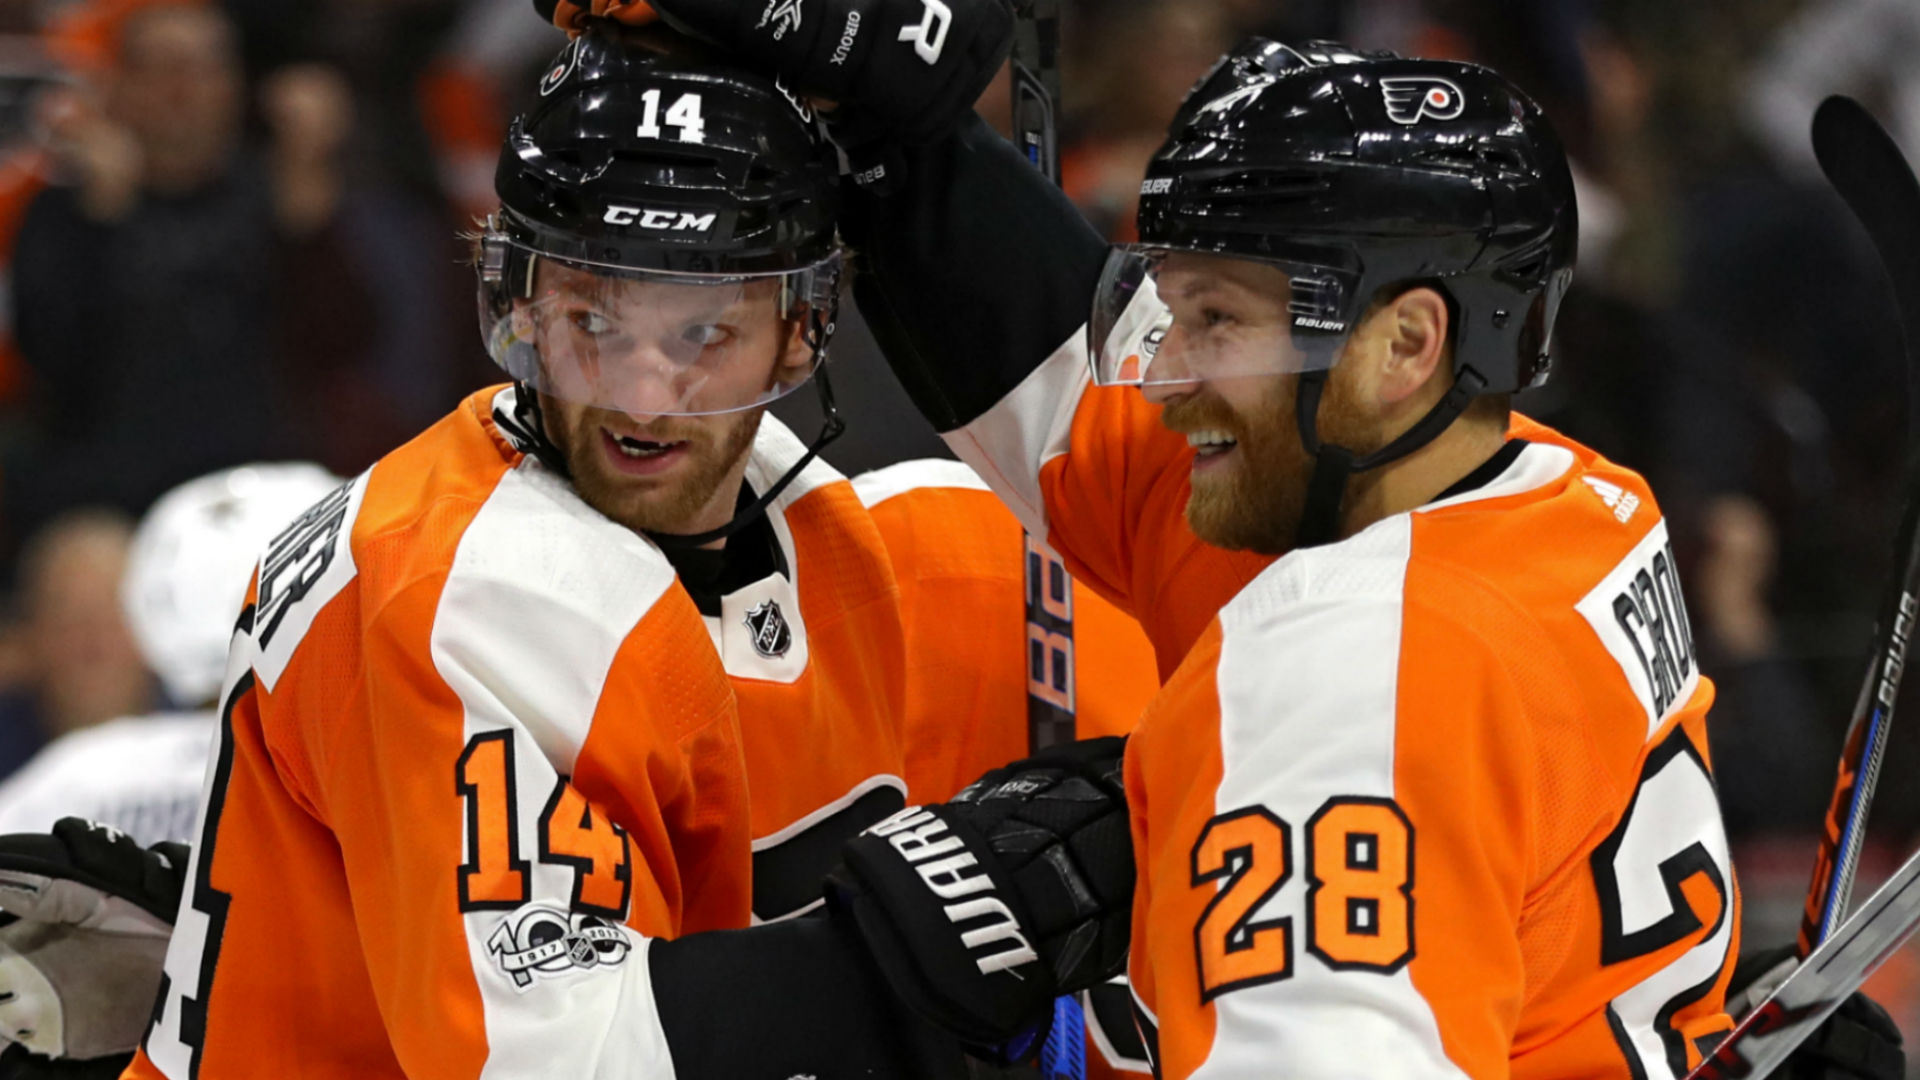 Winging it: How Flyers' top-line shakeup unleashed Sean Couturier